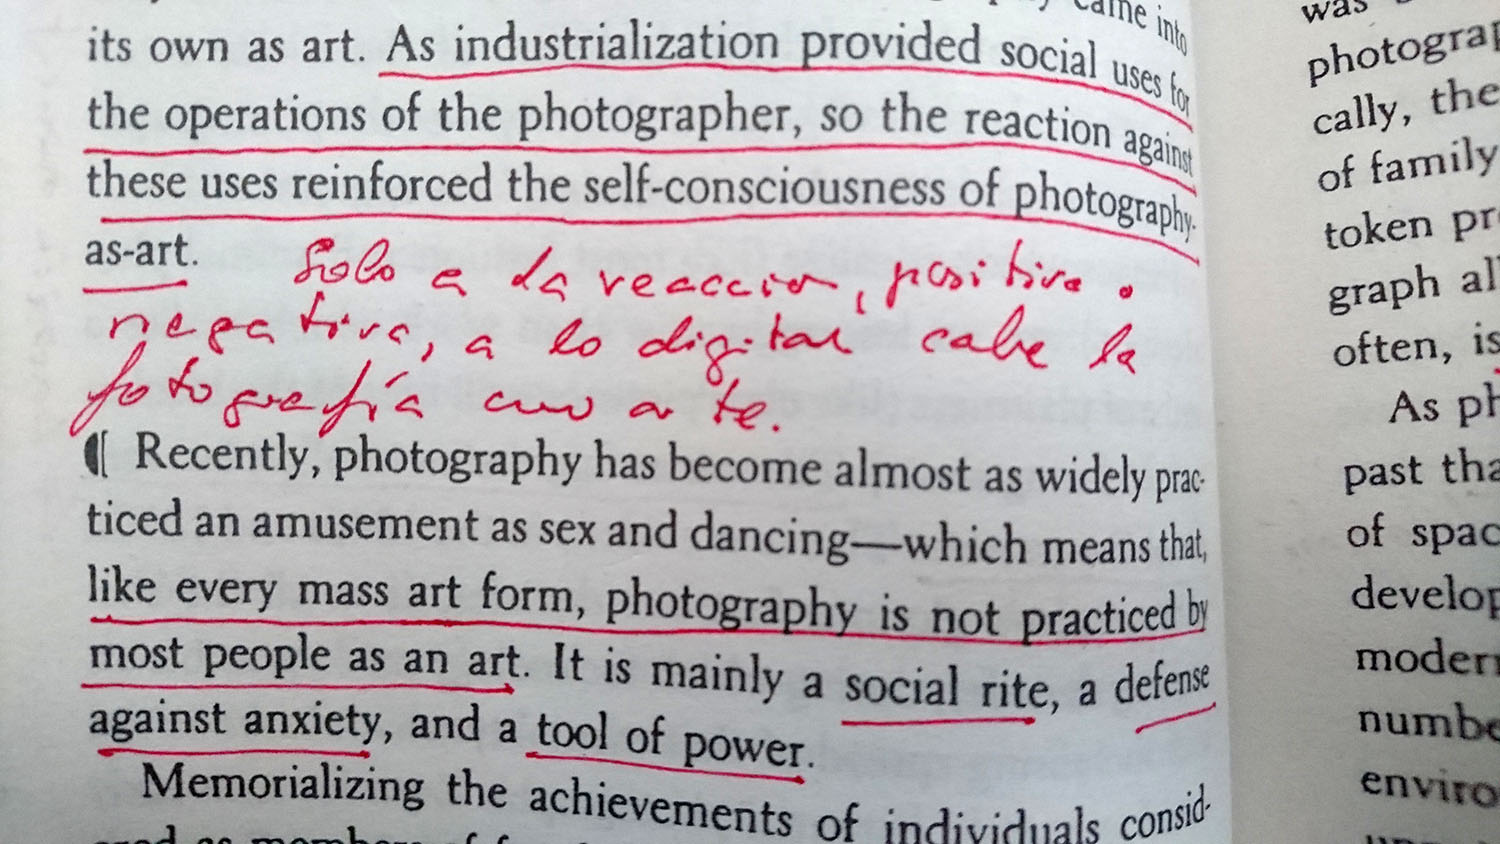 Sontag, S. (1979).  On photography . London: Penguin Books.